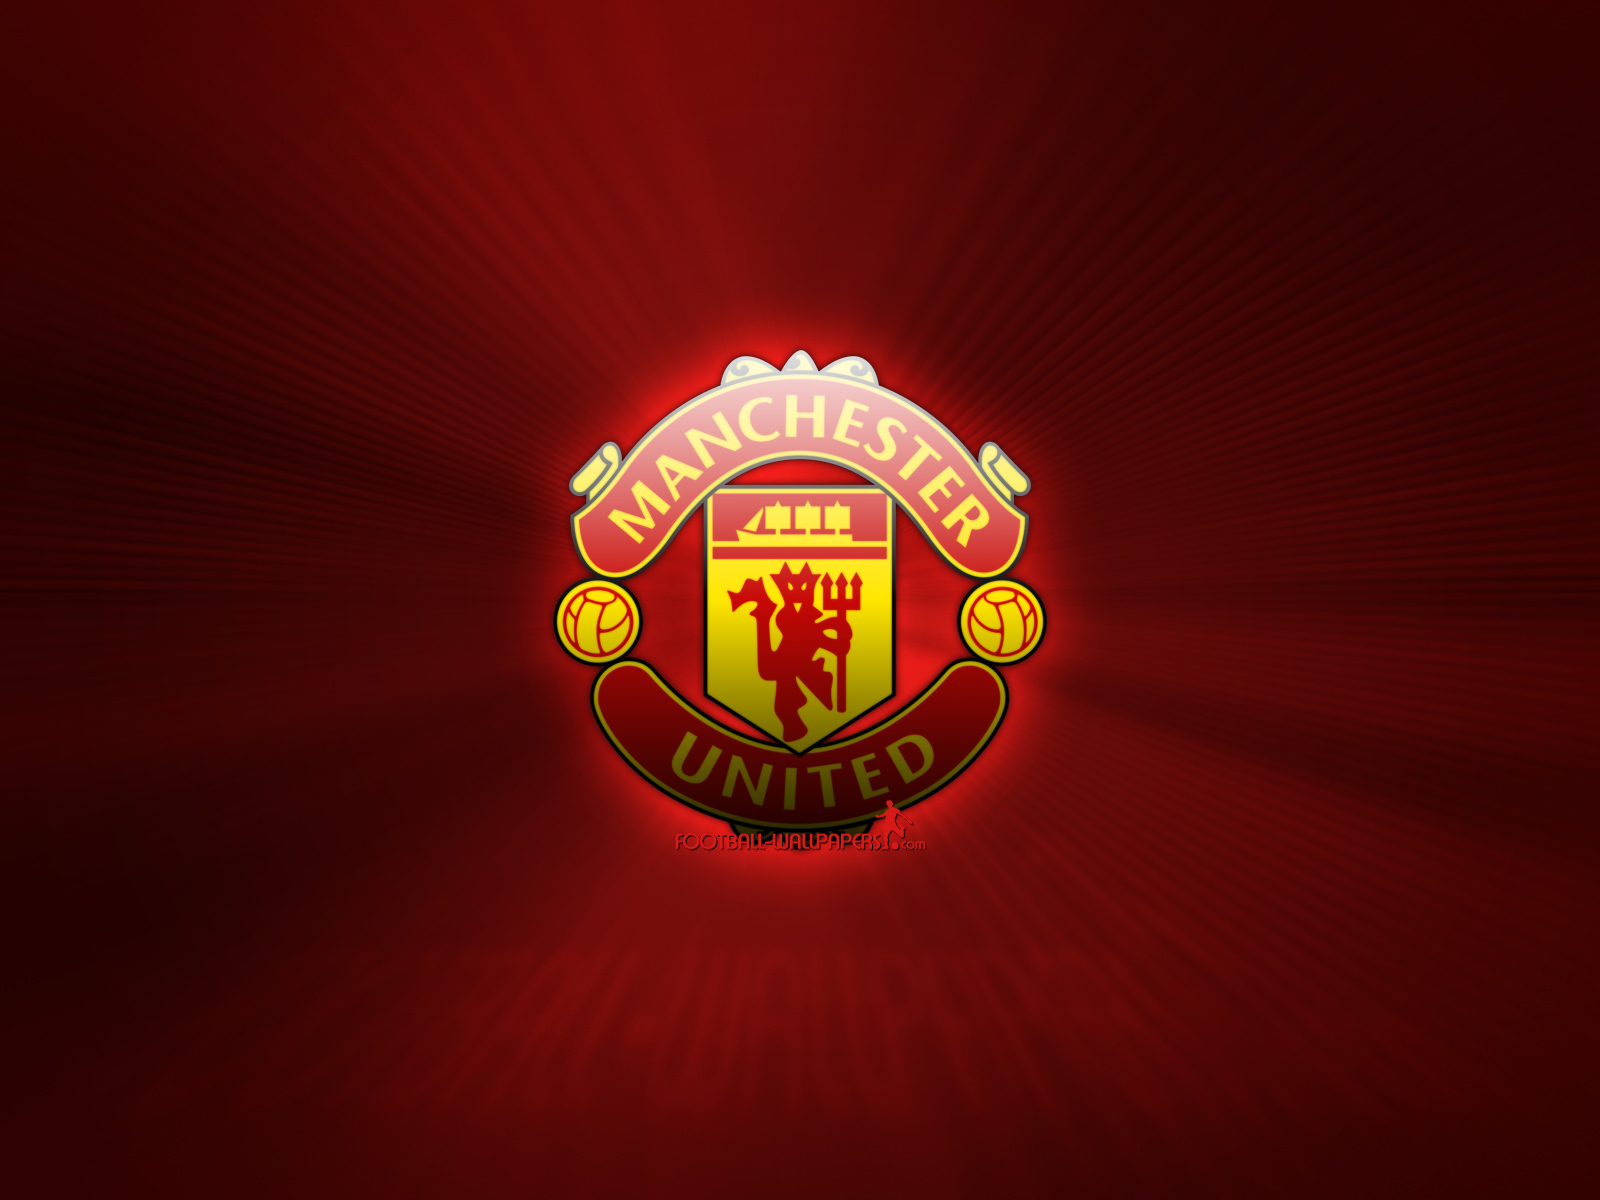 10 manchester united wallpaper quotes wallpapers